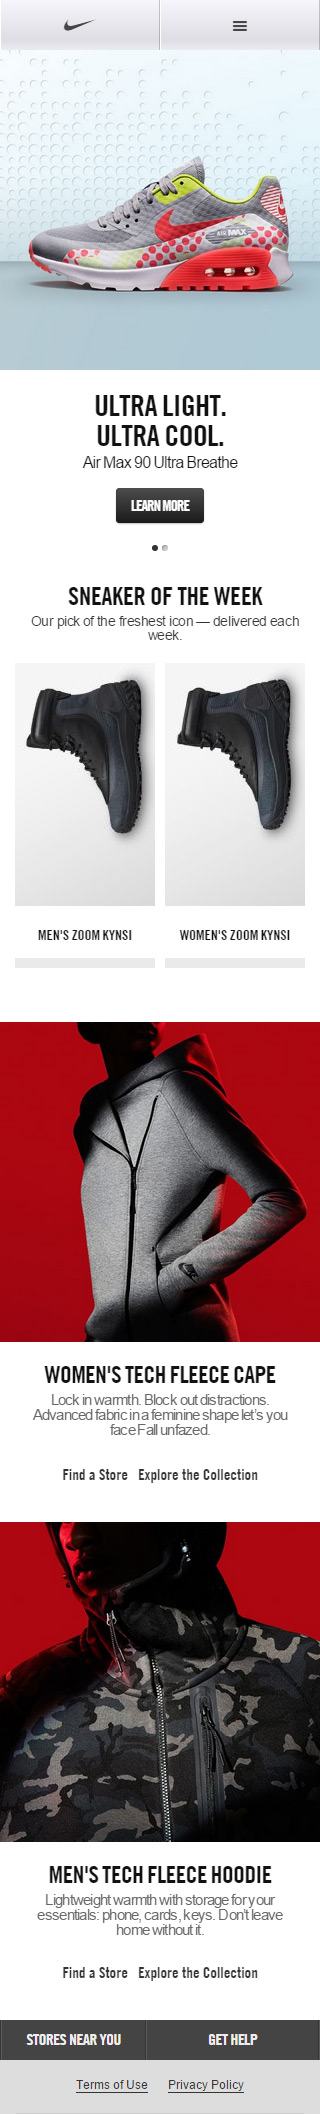 nike mobile website